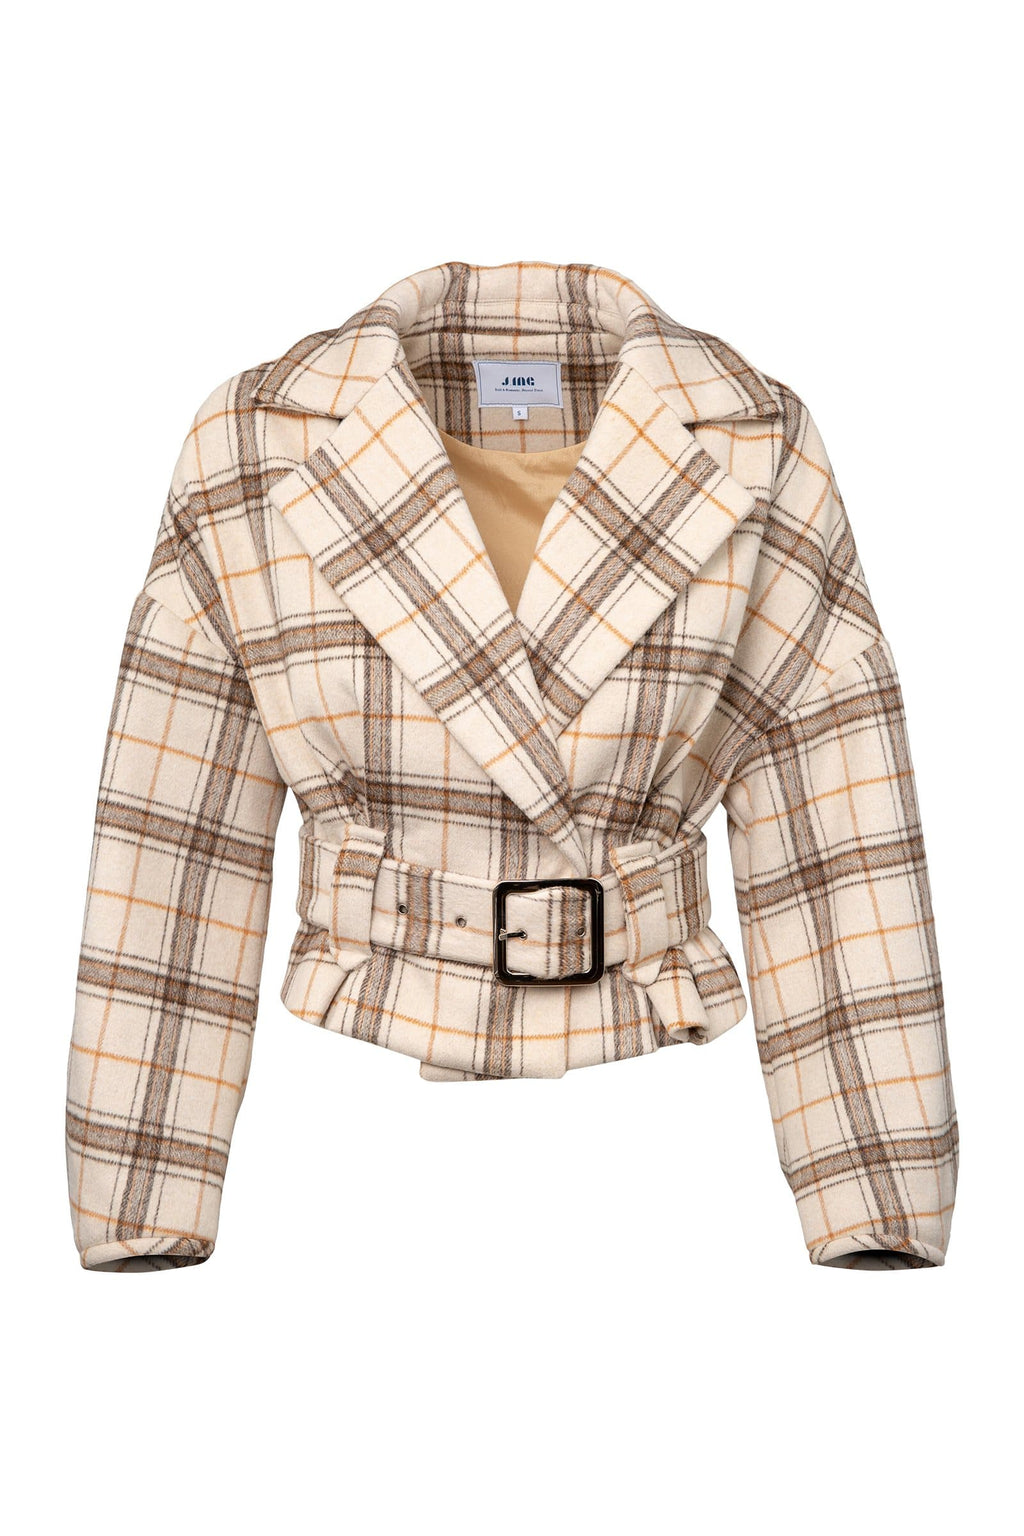 Good or Plaid Beige Belted Coat by J.ING